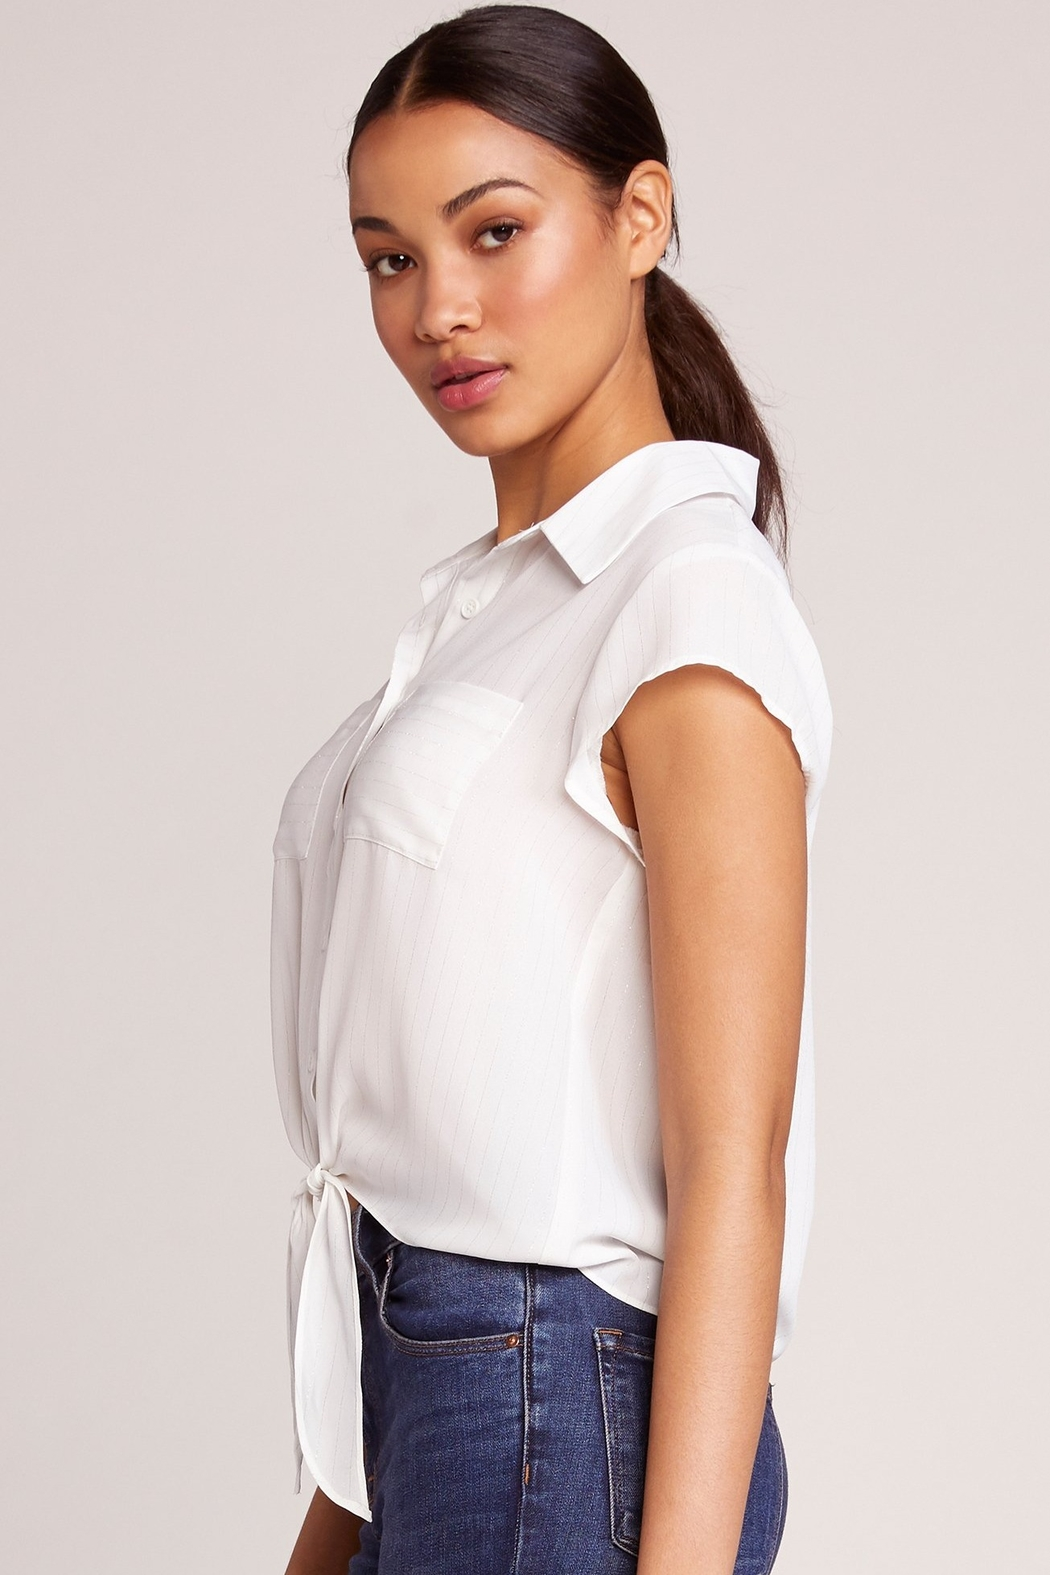 JACK DAKOTA All Lined Up Tie Blouse - Front Full Image